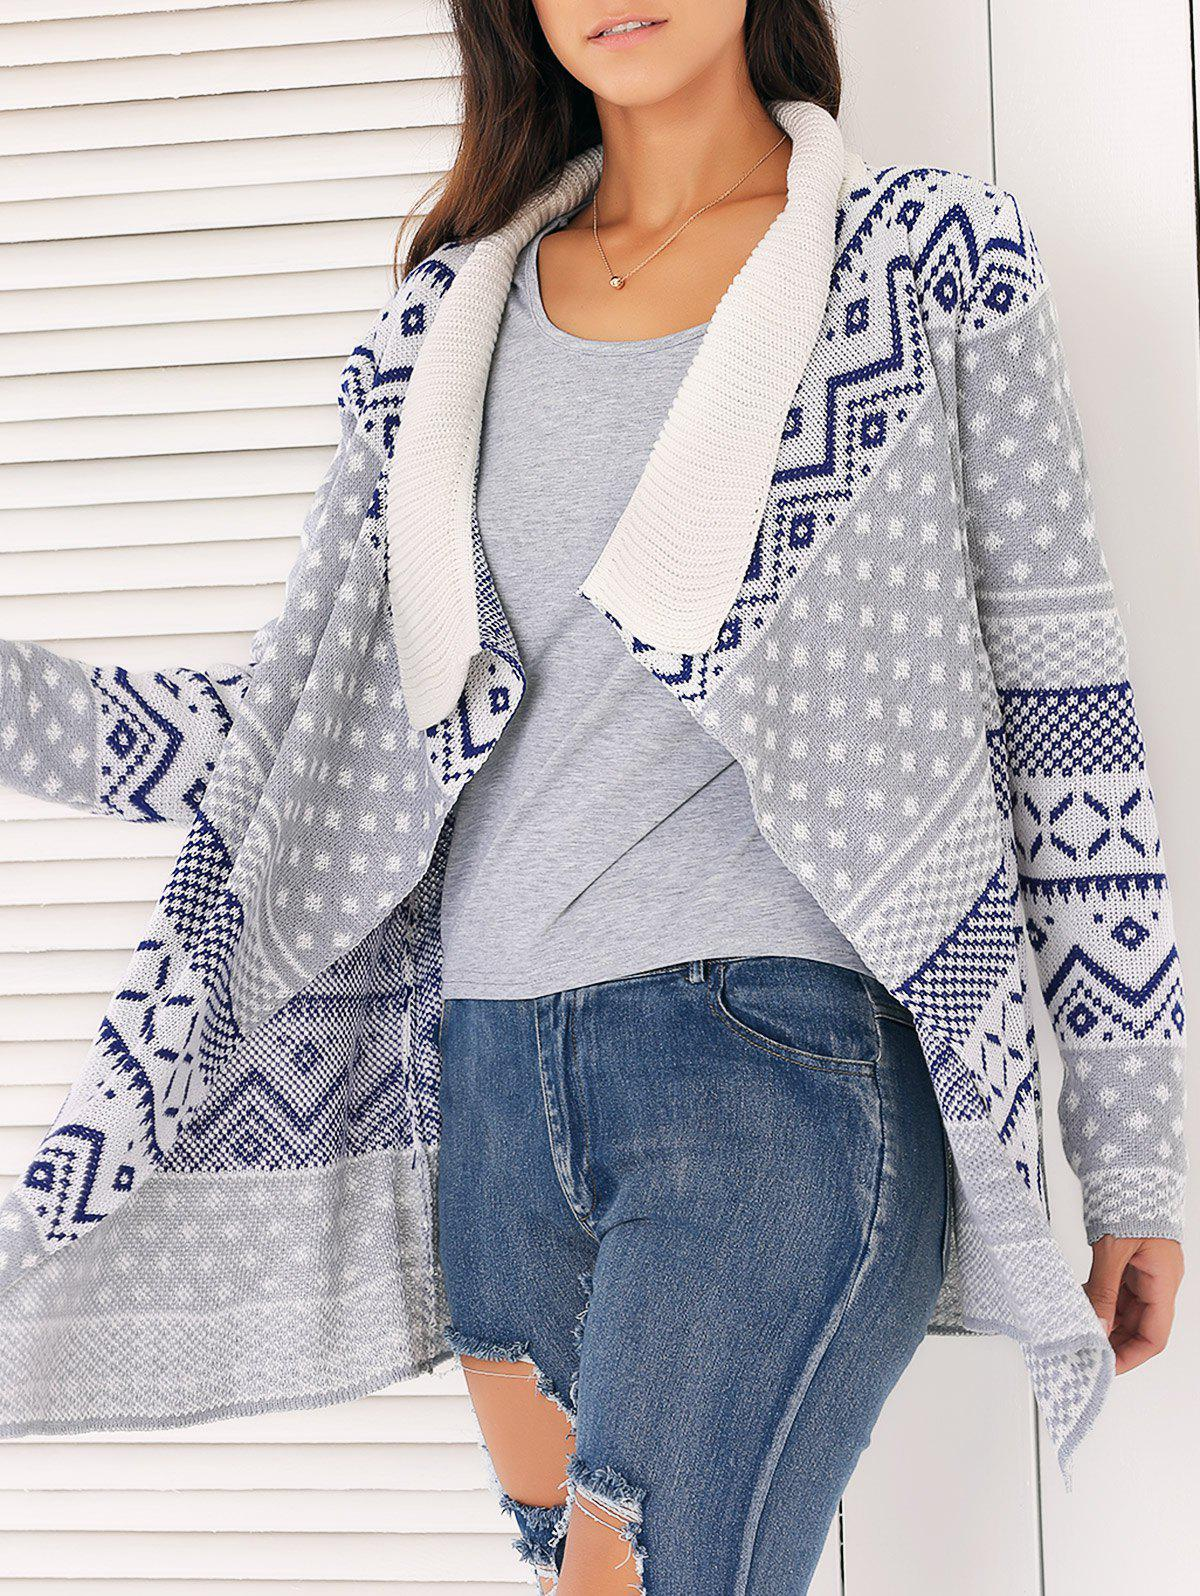 Brief Geometric Pattern Asymmetrical Cardigan For Women - GRAY ONE SIZE